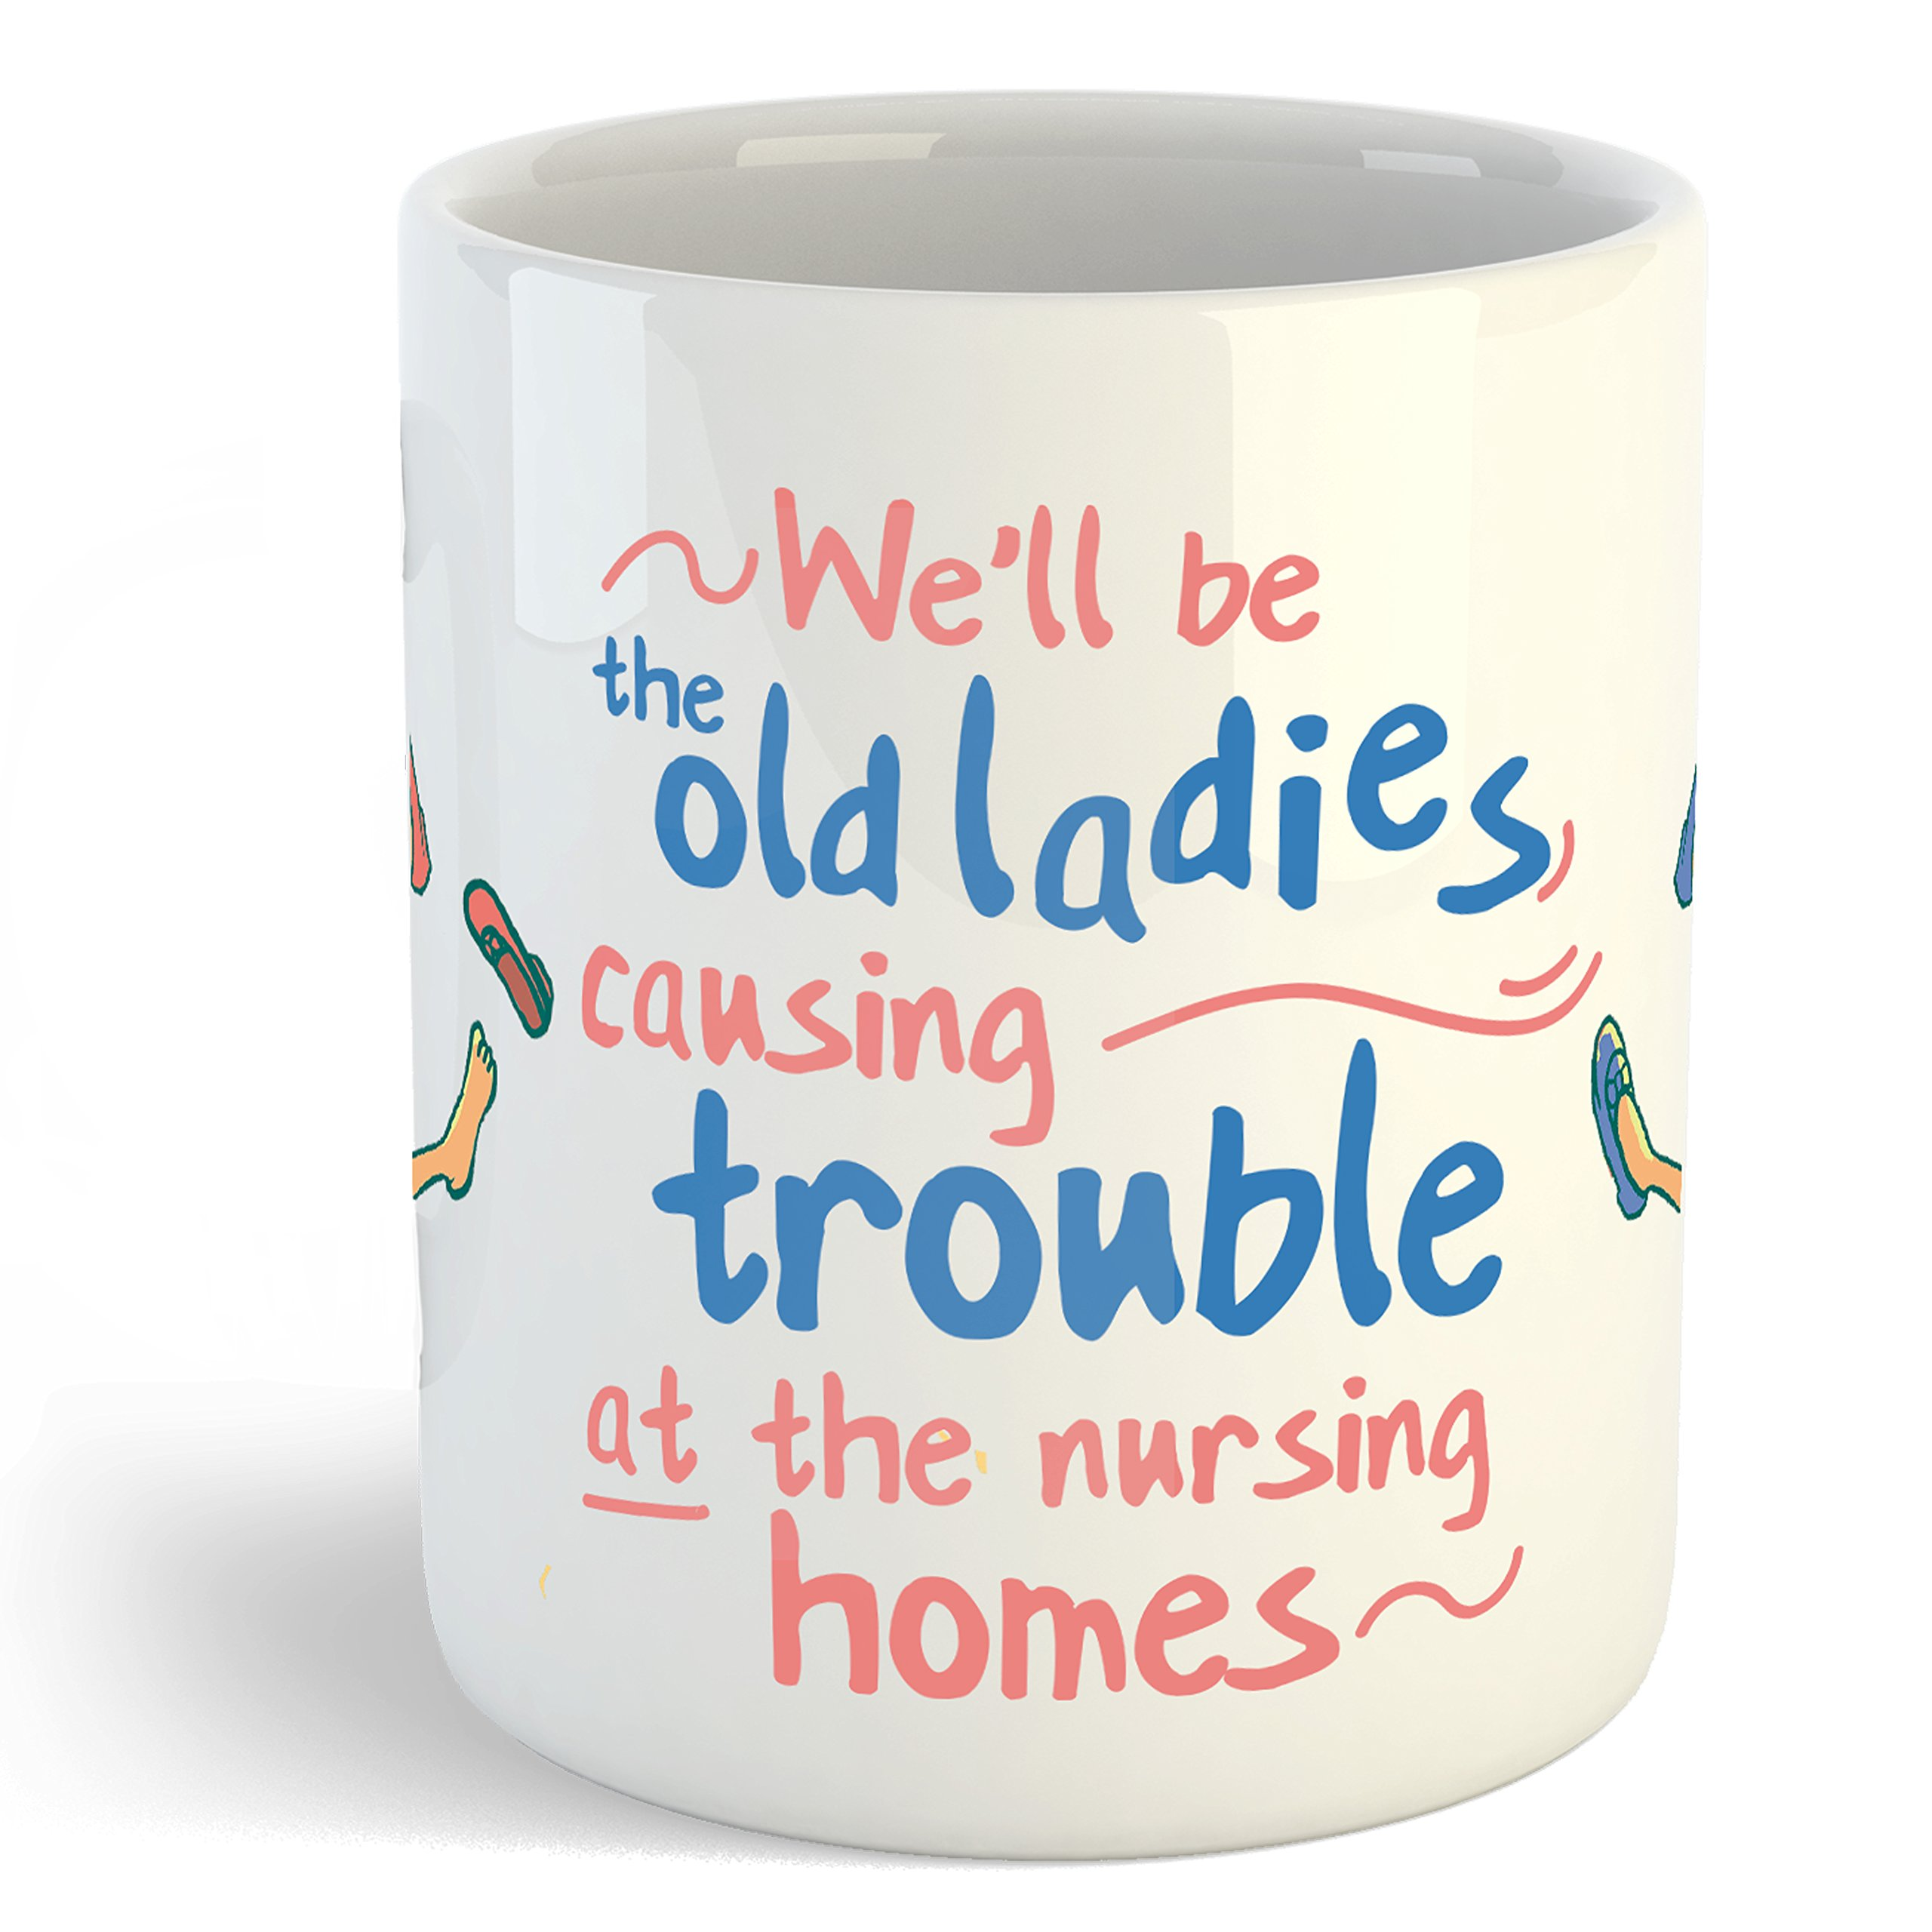 Funny Coffee Mugs for Women: A Unique and Thoughtful Novelty Coffee Mugs or Teacup Gift to Your Special Bff. We'll Be The Old Ladies Causing Trouble At The Nursing Homes